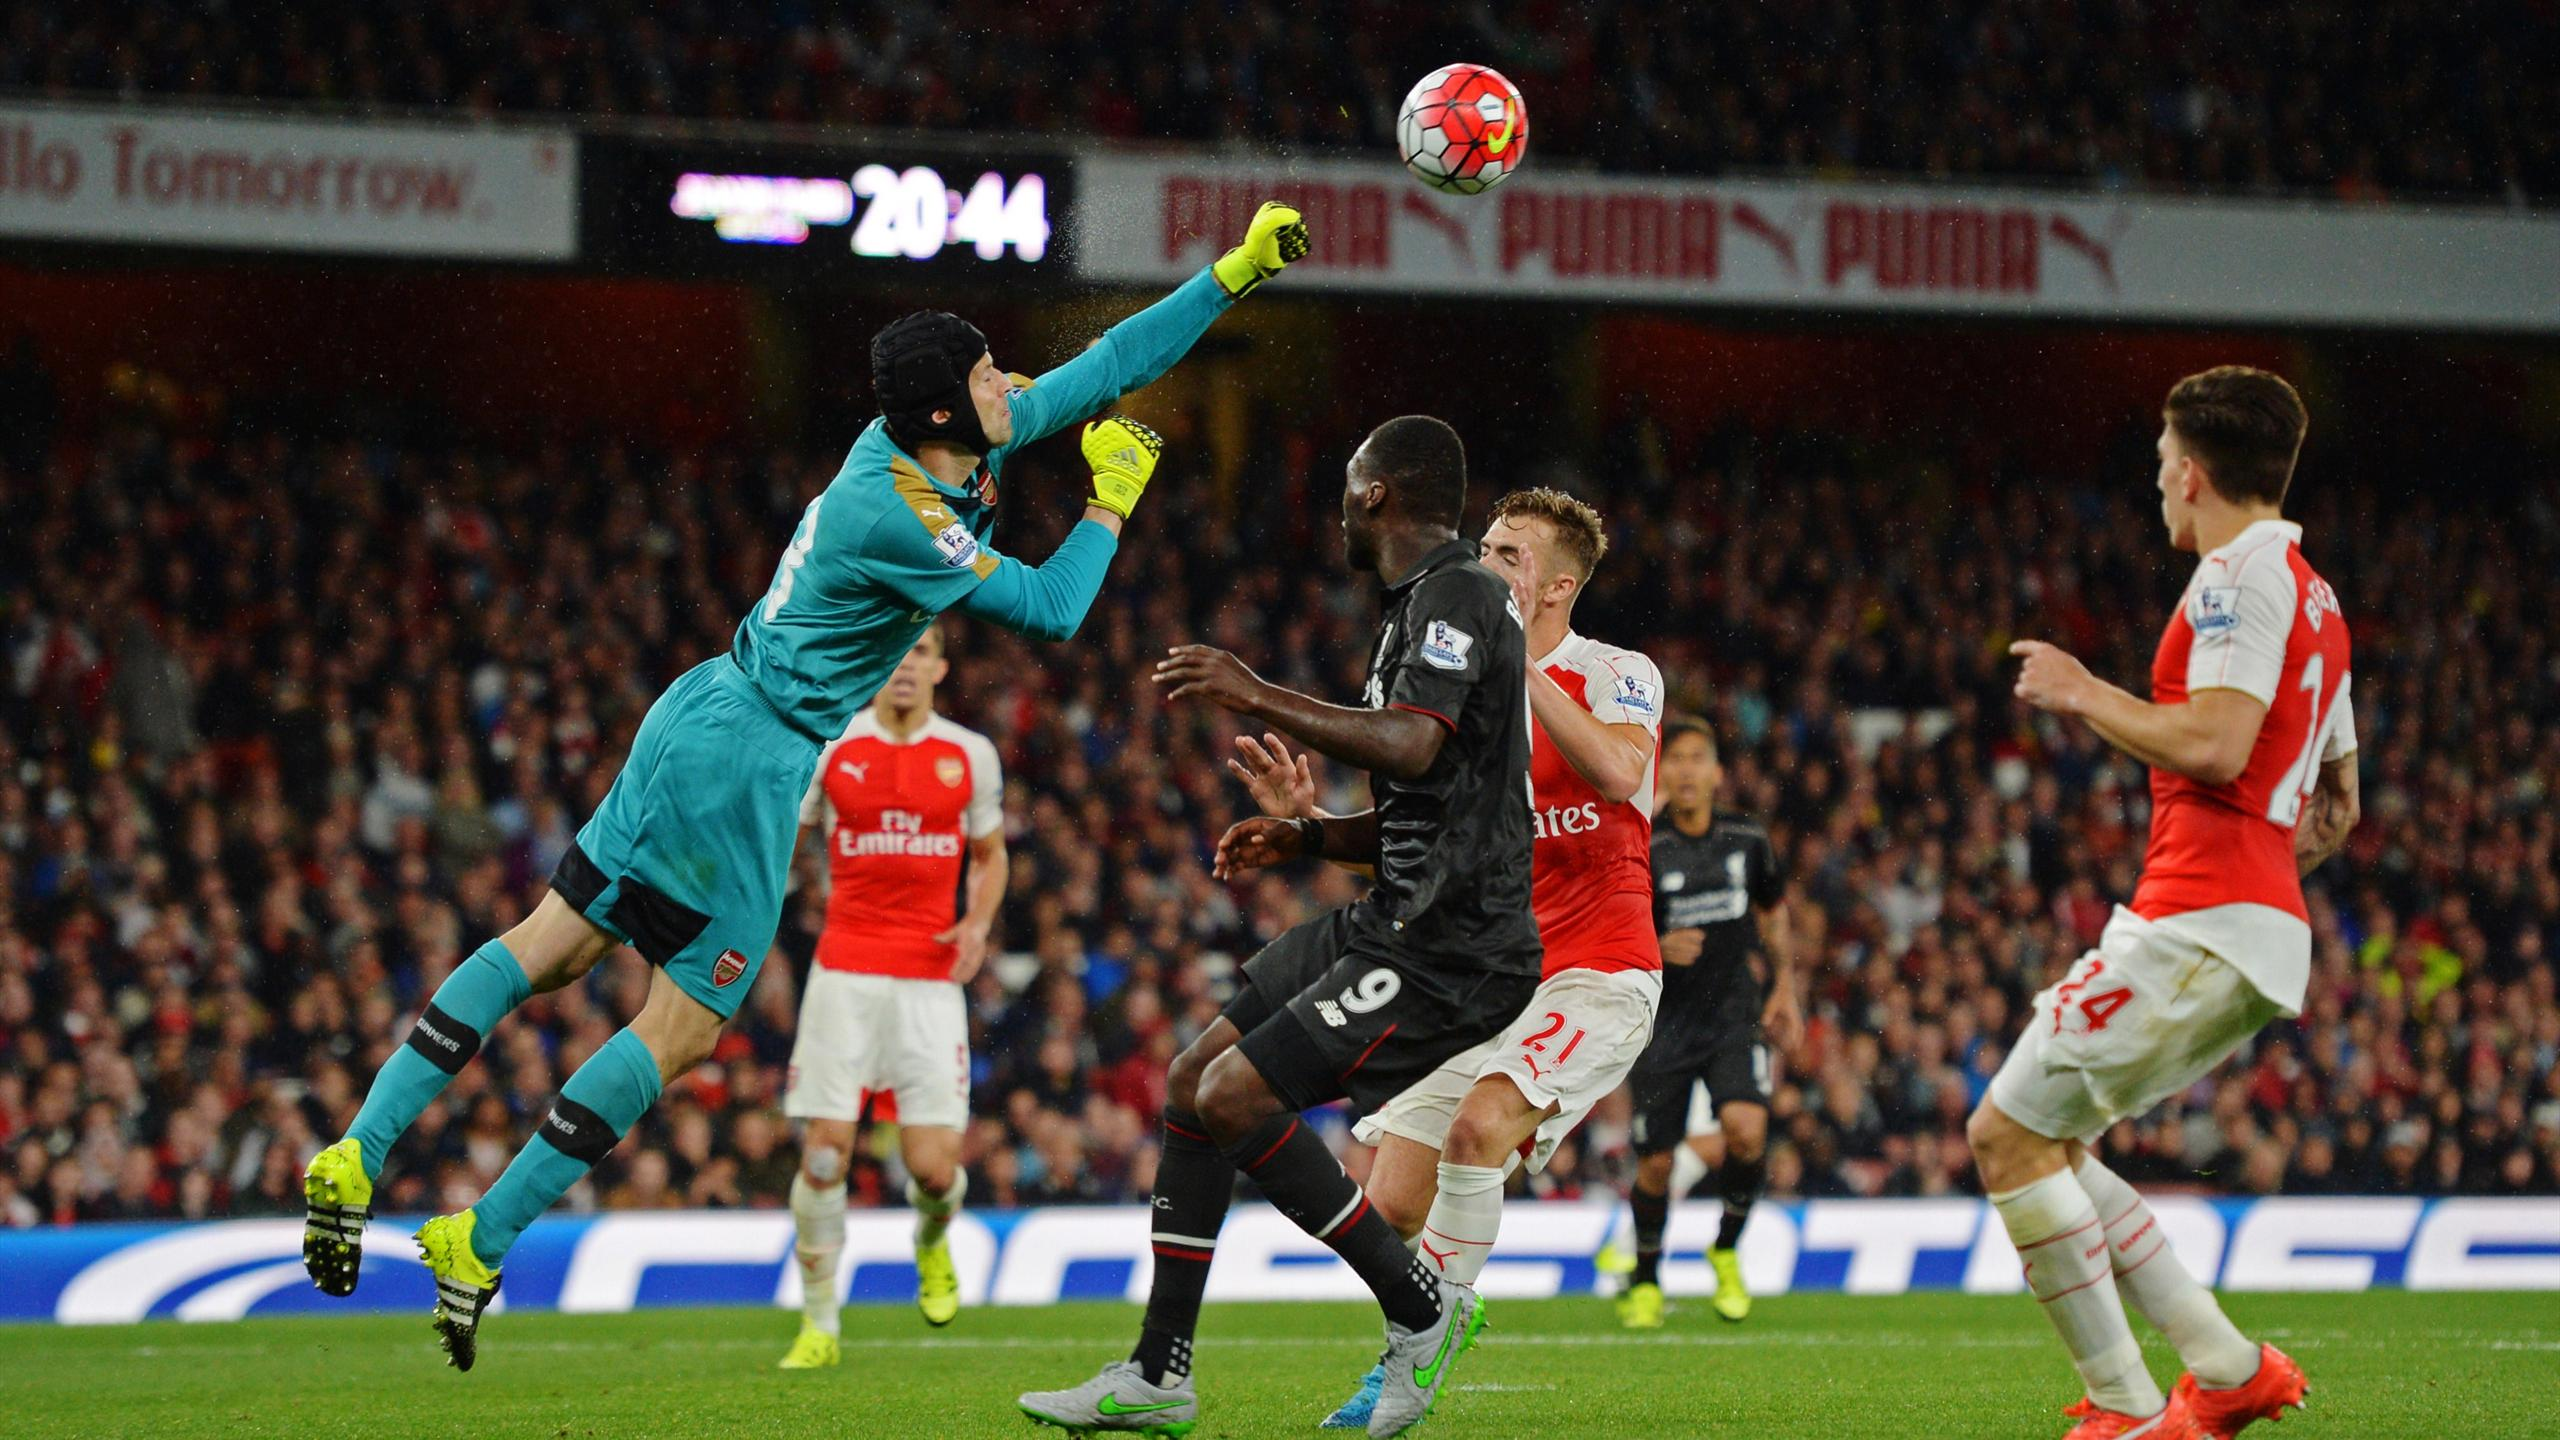 Arsenal's Petr Cech in action with Liverpool's Christian Benteke